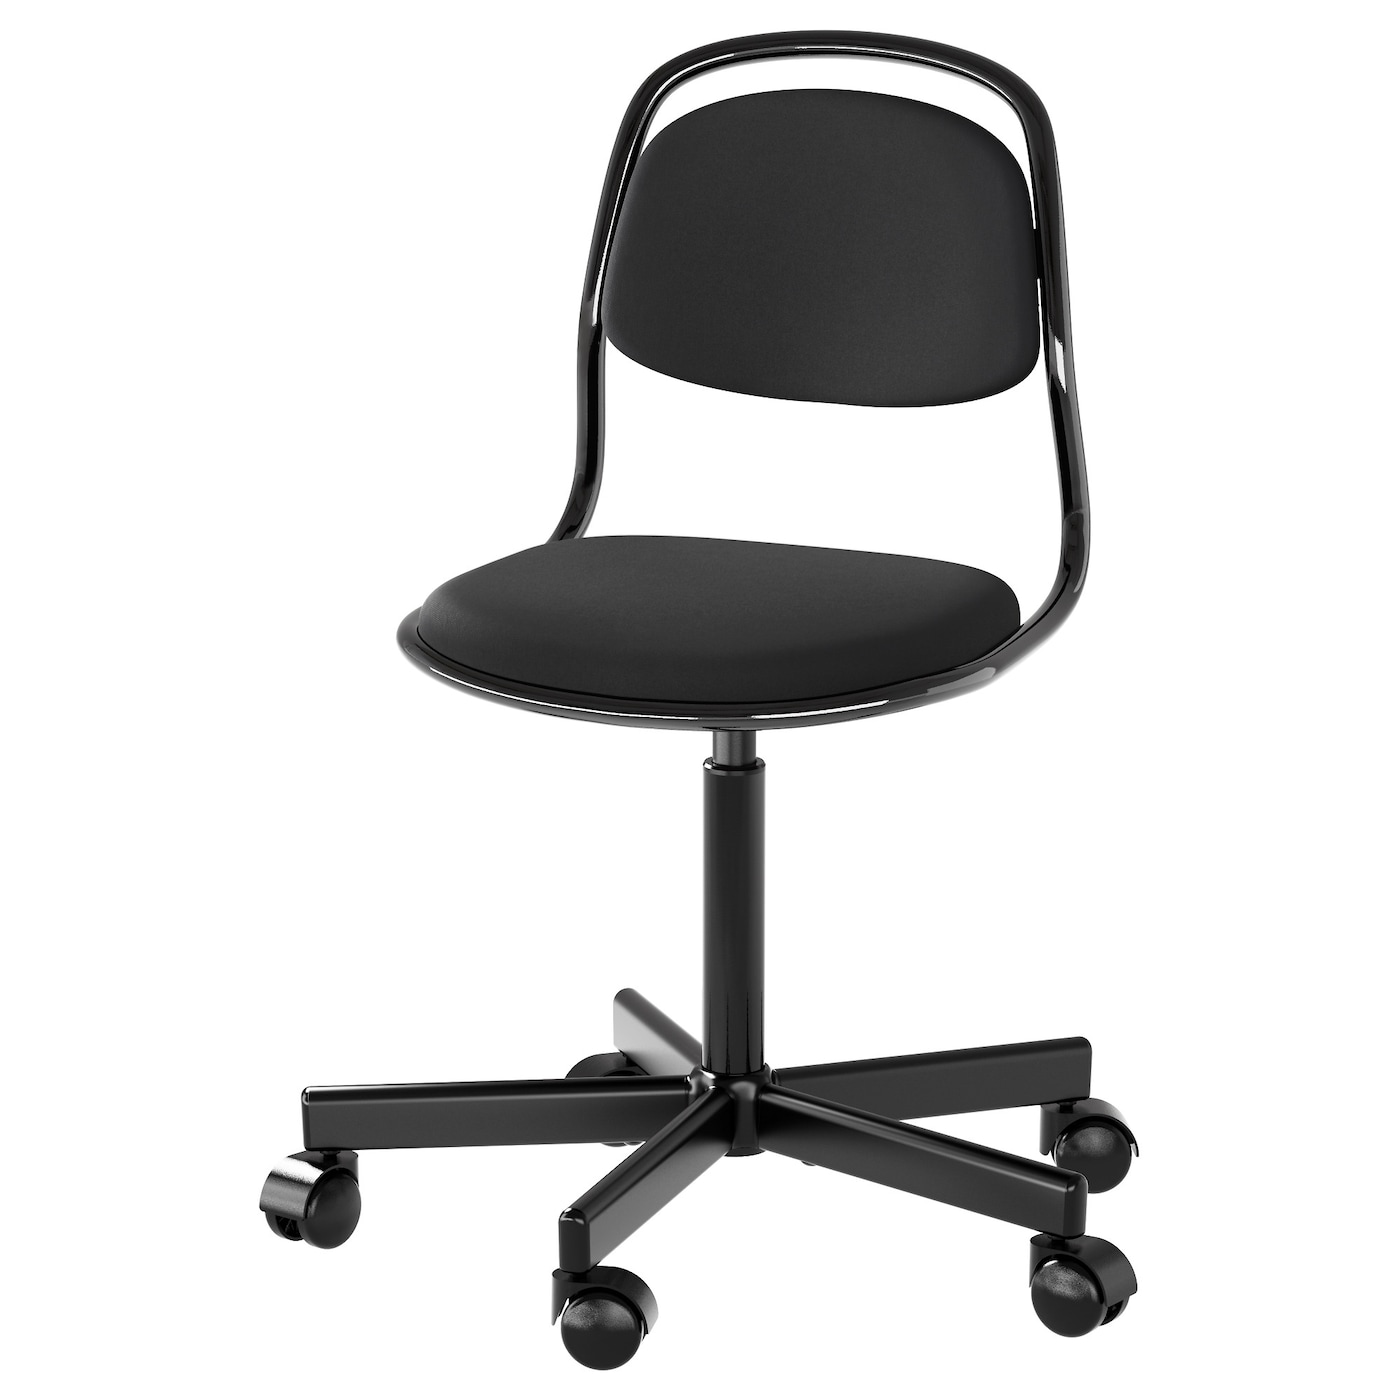 Amazing IKEA ÖRFJÄLL Childrenu0027s Desk Chair You Sit Comfortably Since The Chair Is  Adjustable In Height.